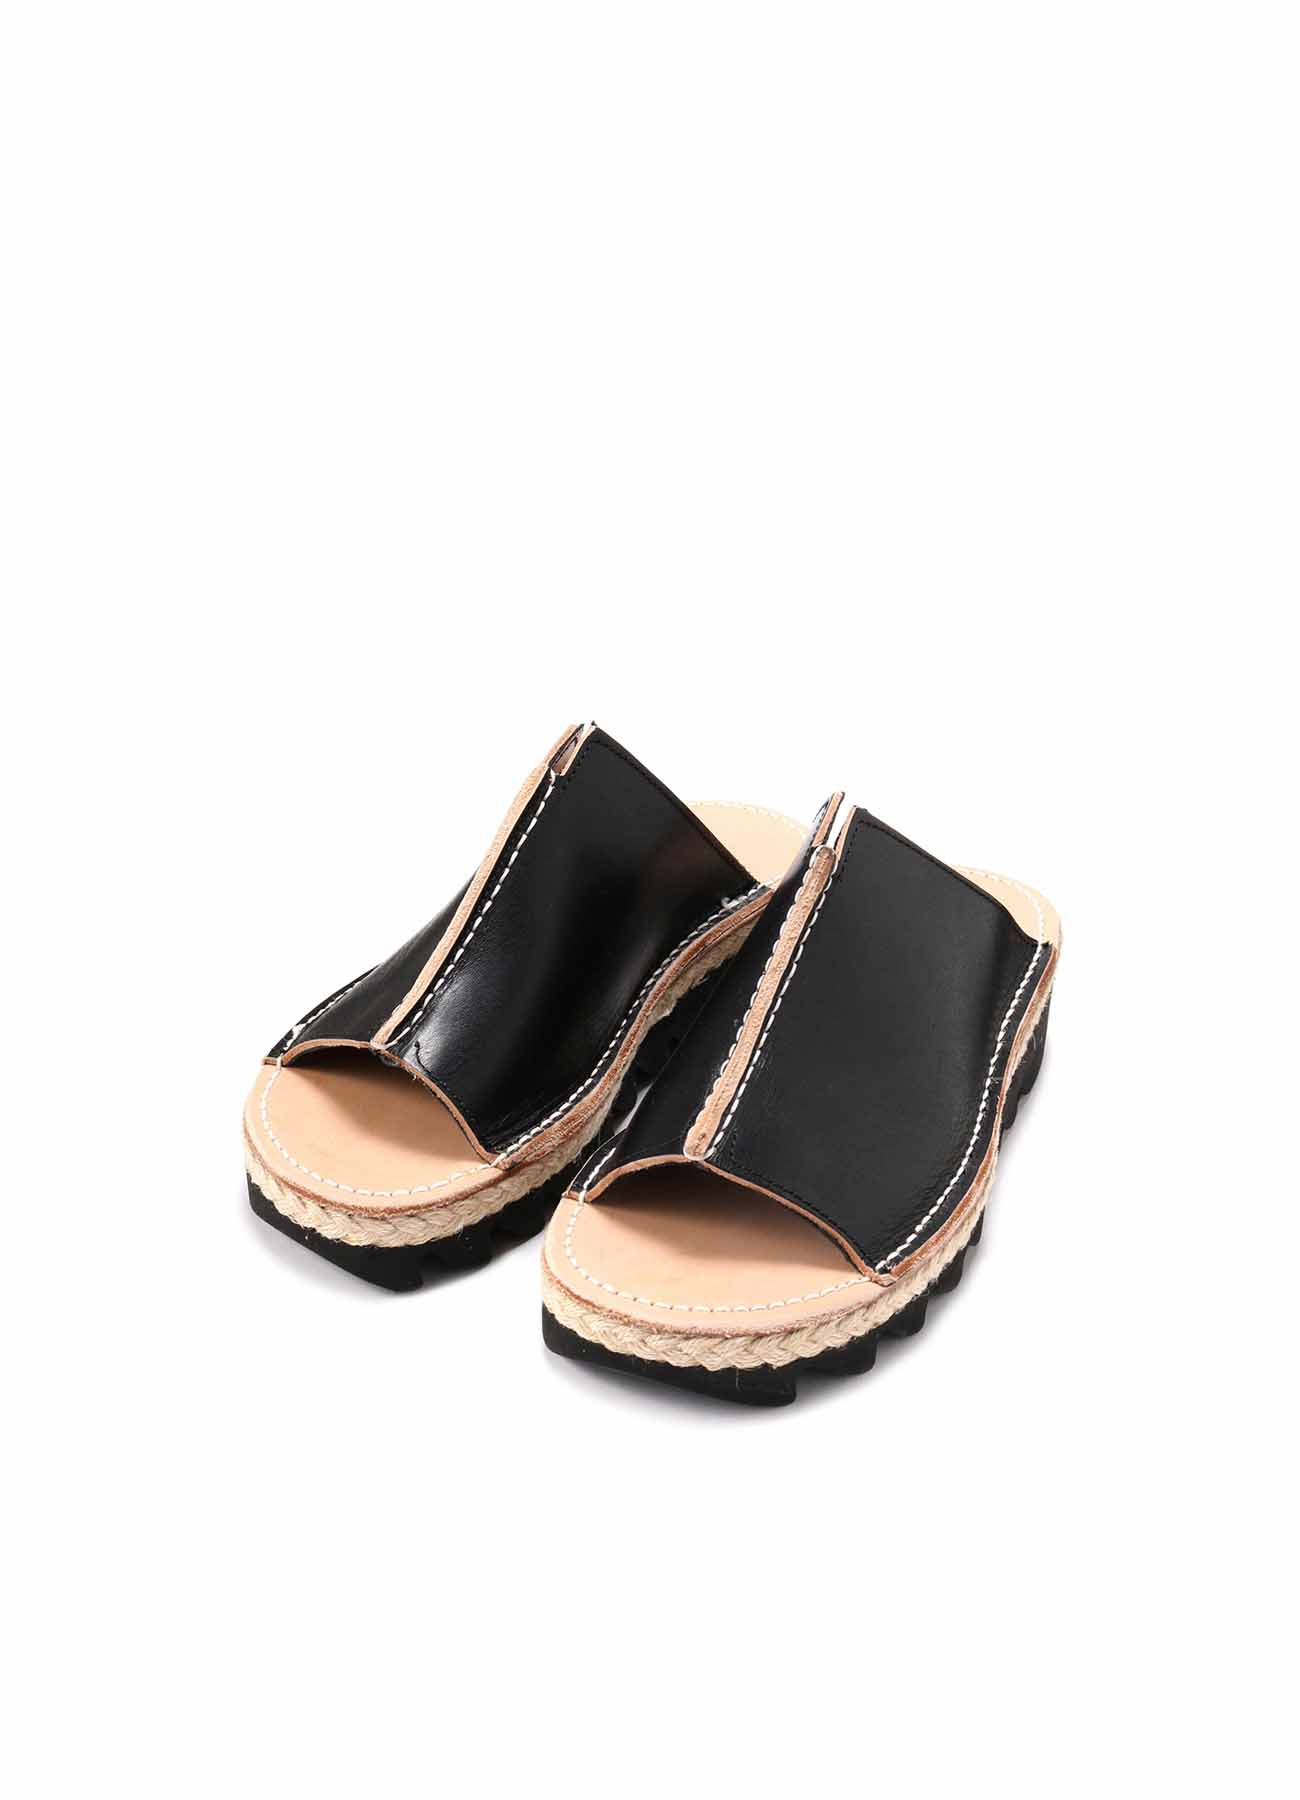 THICH NUME LEATHER B CENTER CONNECTED SANDALS